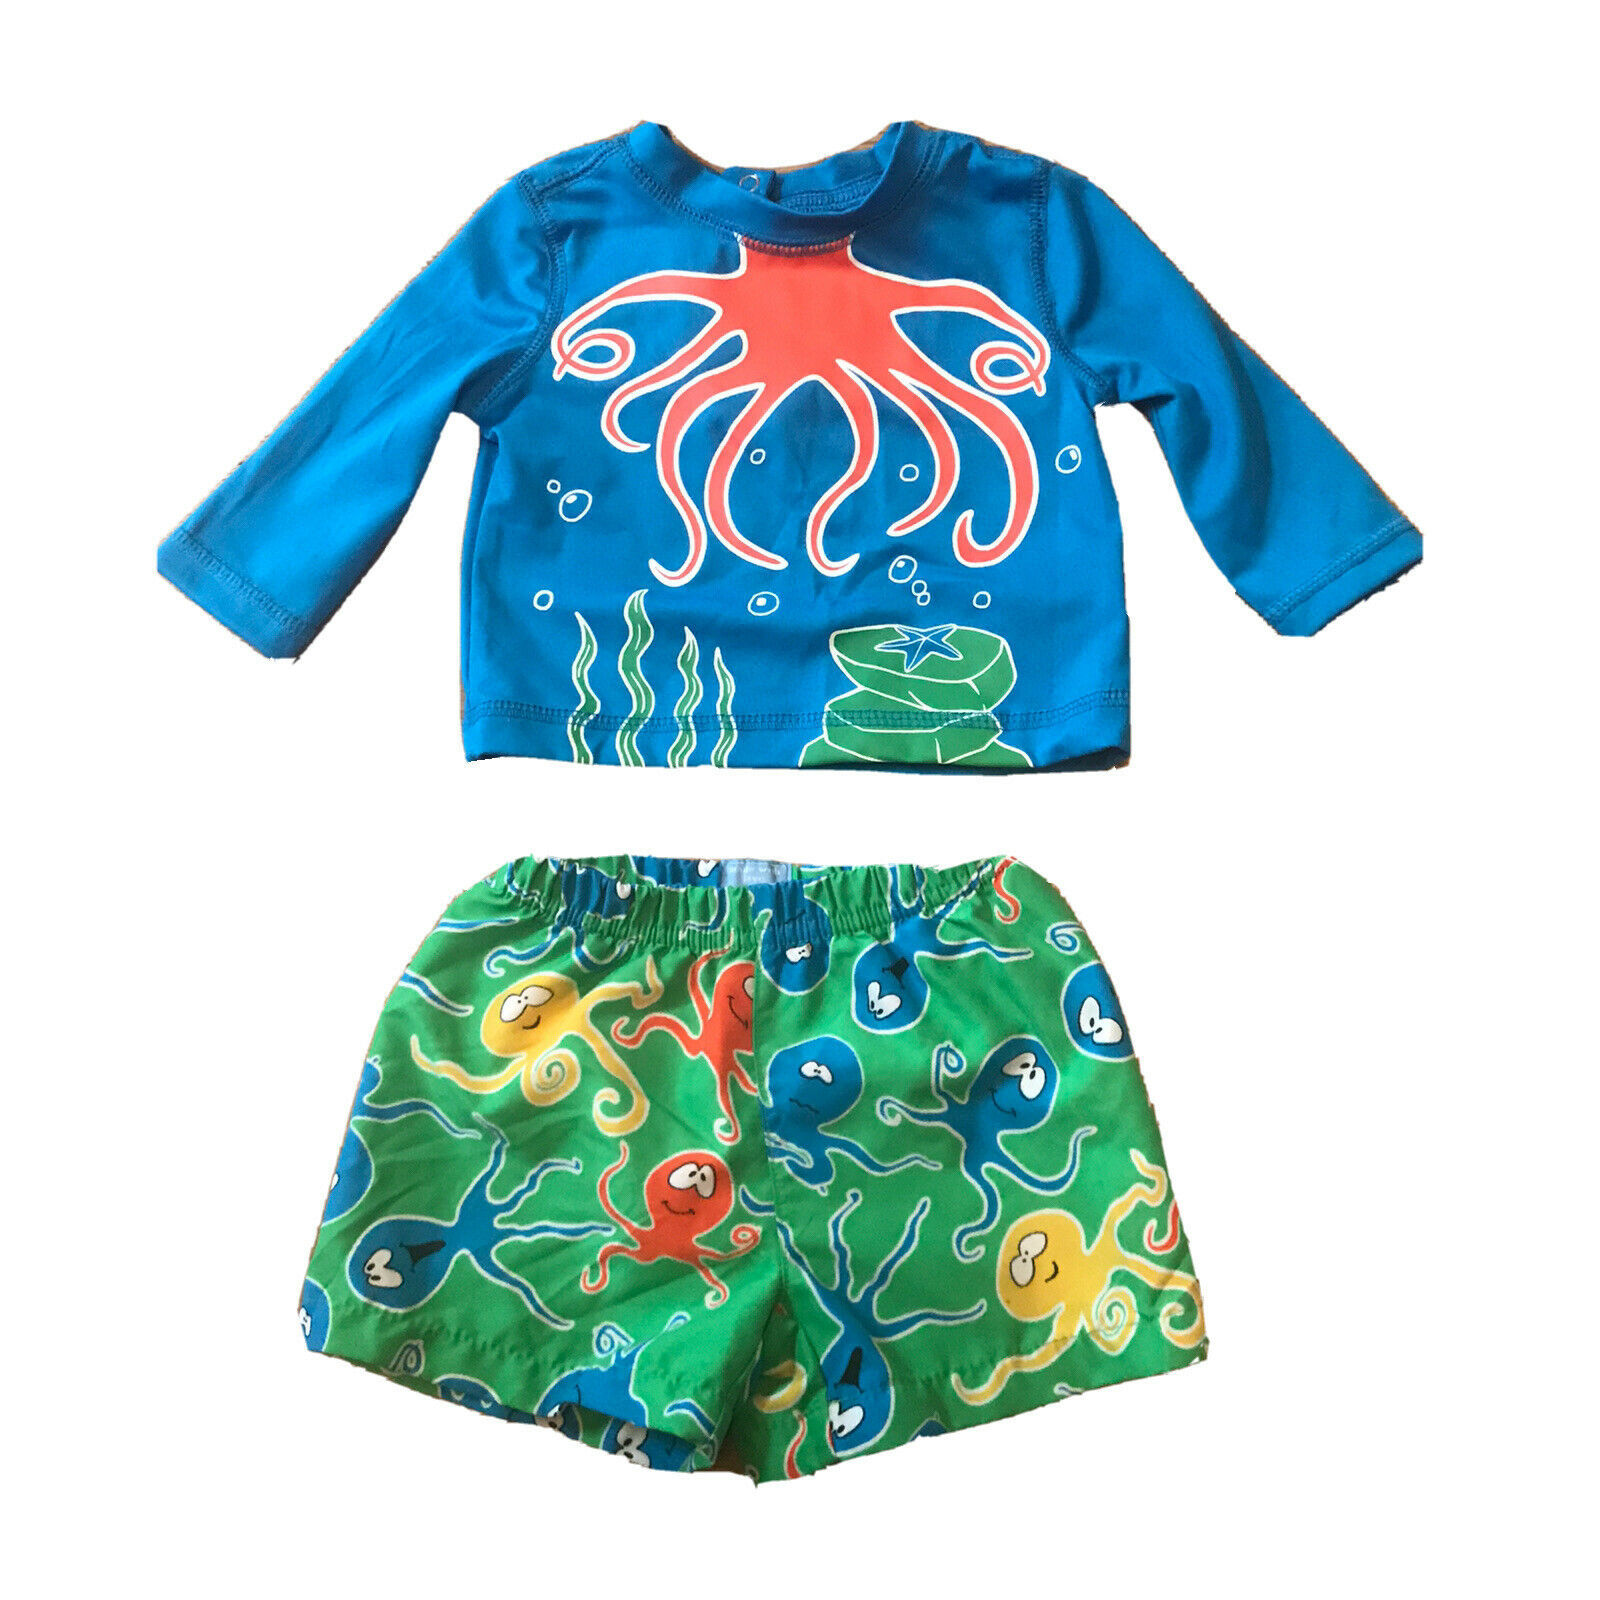 The Children's Place Boys 3-6 Month Bathing Suit Swimsuit Trunks Blue Green Fish - $10.18